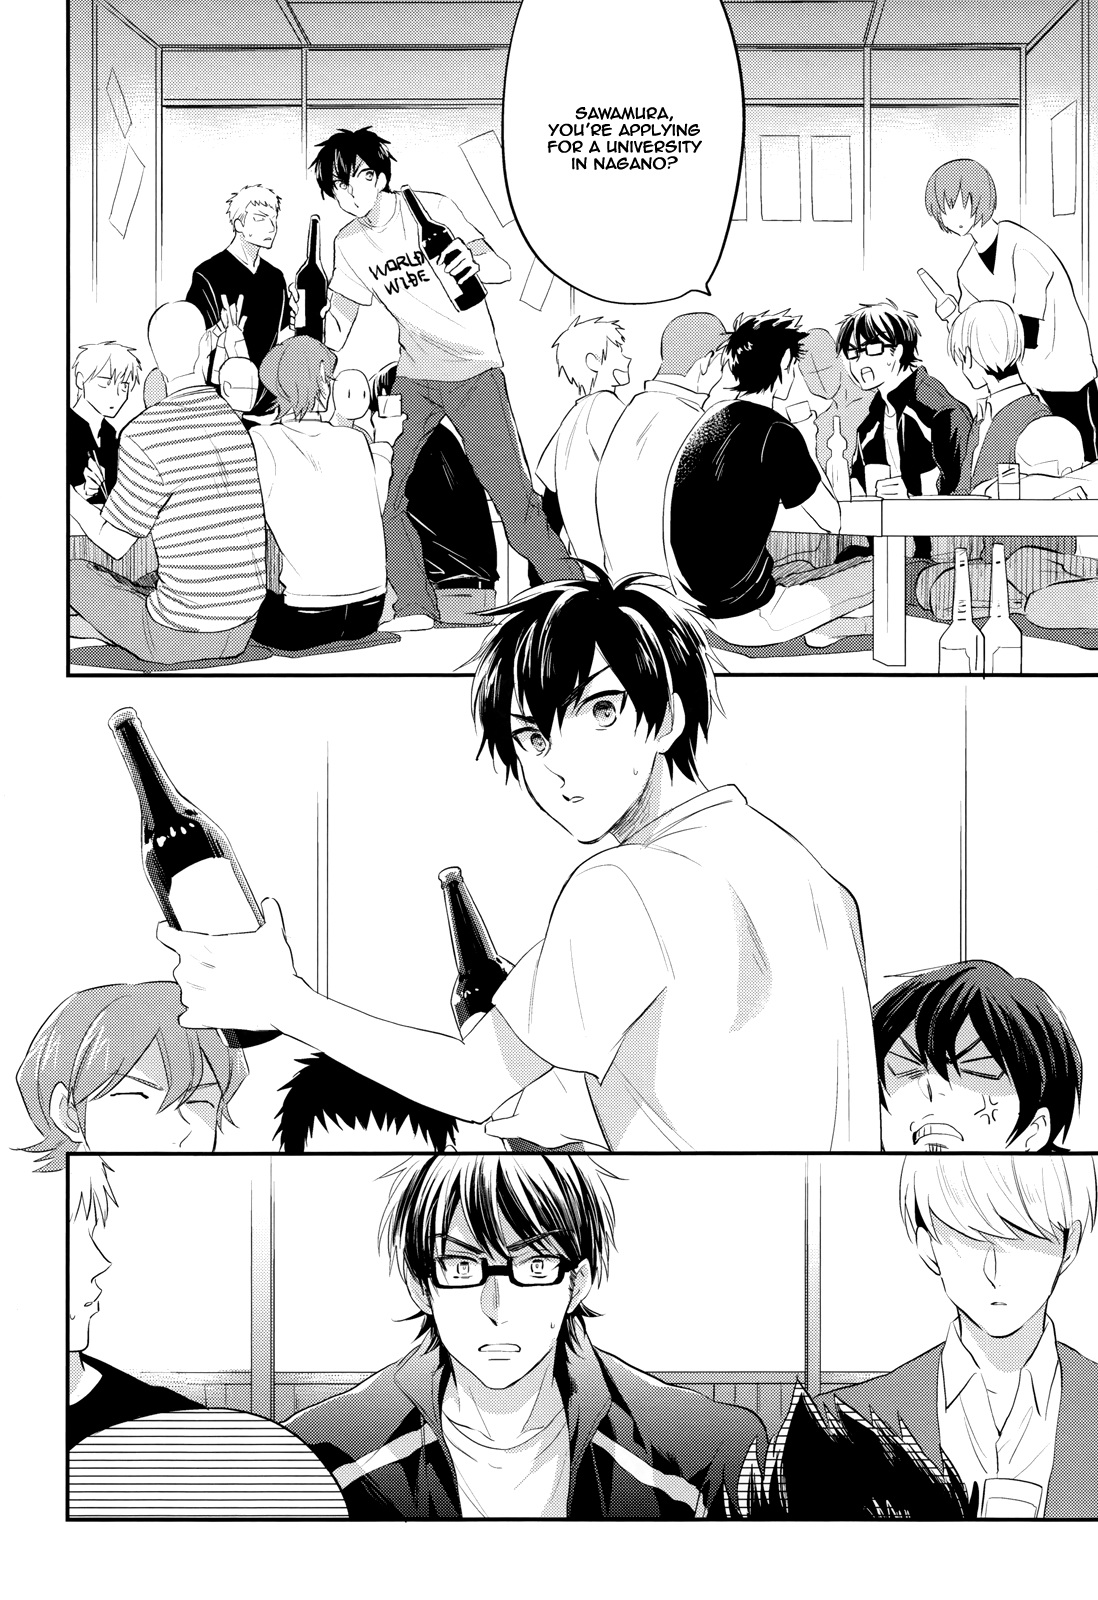 Daiya no A dj - Vintage chapter 1 page 17